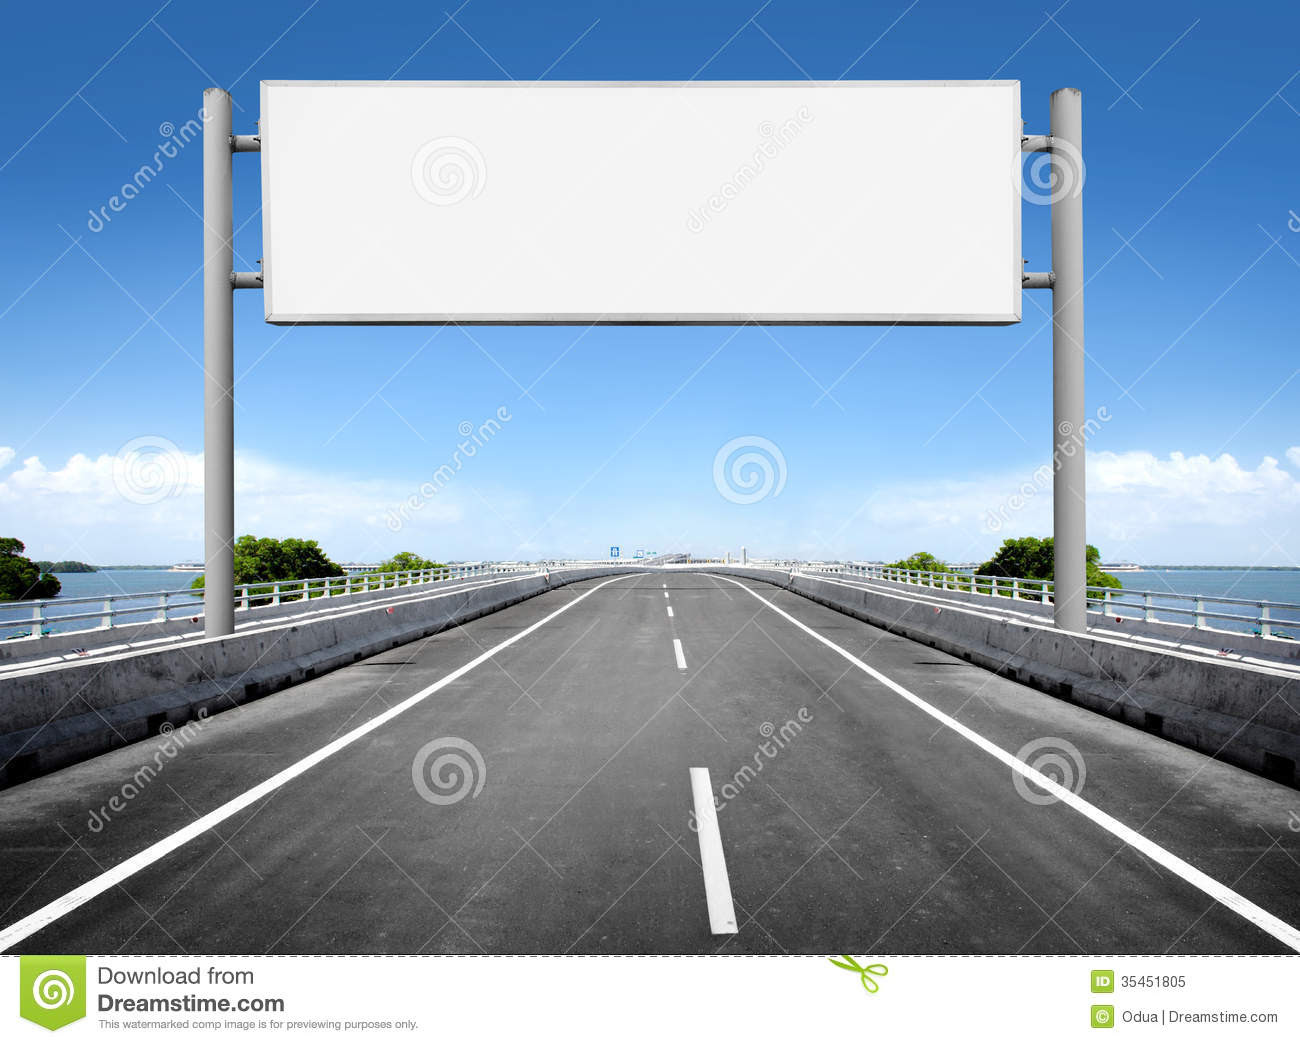 Blank Billboard Or Road Sign Royalty Free Stock Photo - Image ...